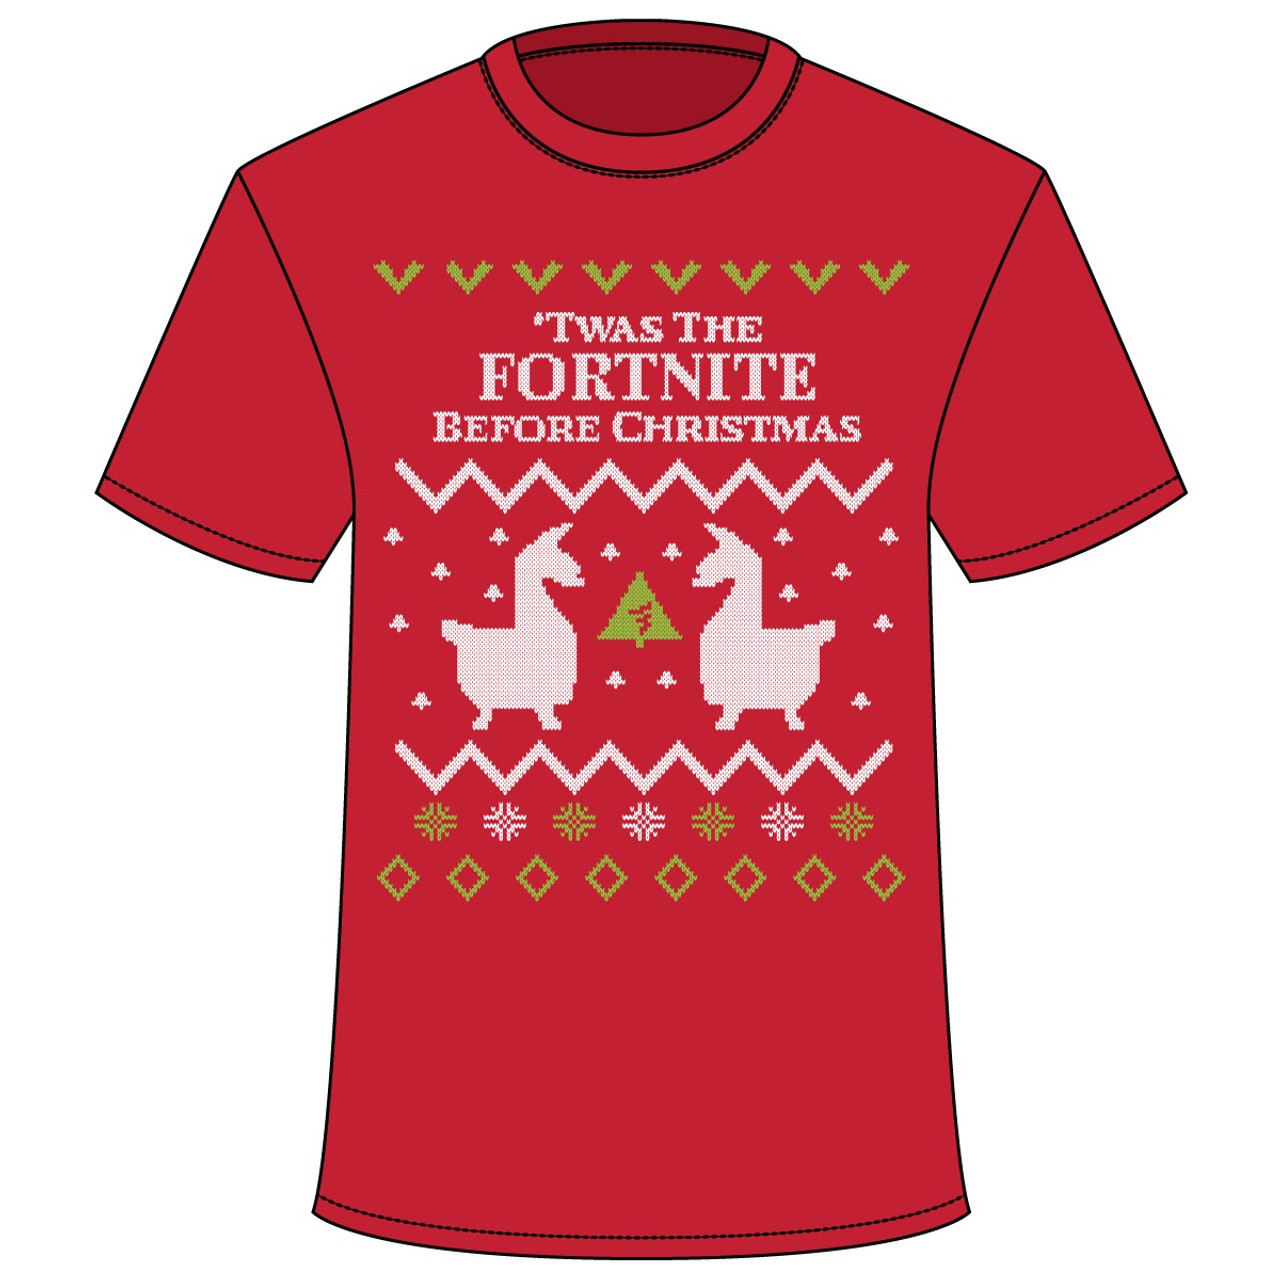 ff60f967 Fortnite Before Christmas Ugly Sweater T-Shirt - Red - RetroFestive.ca